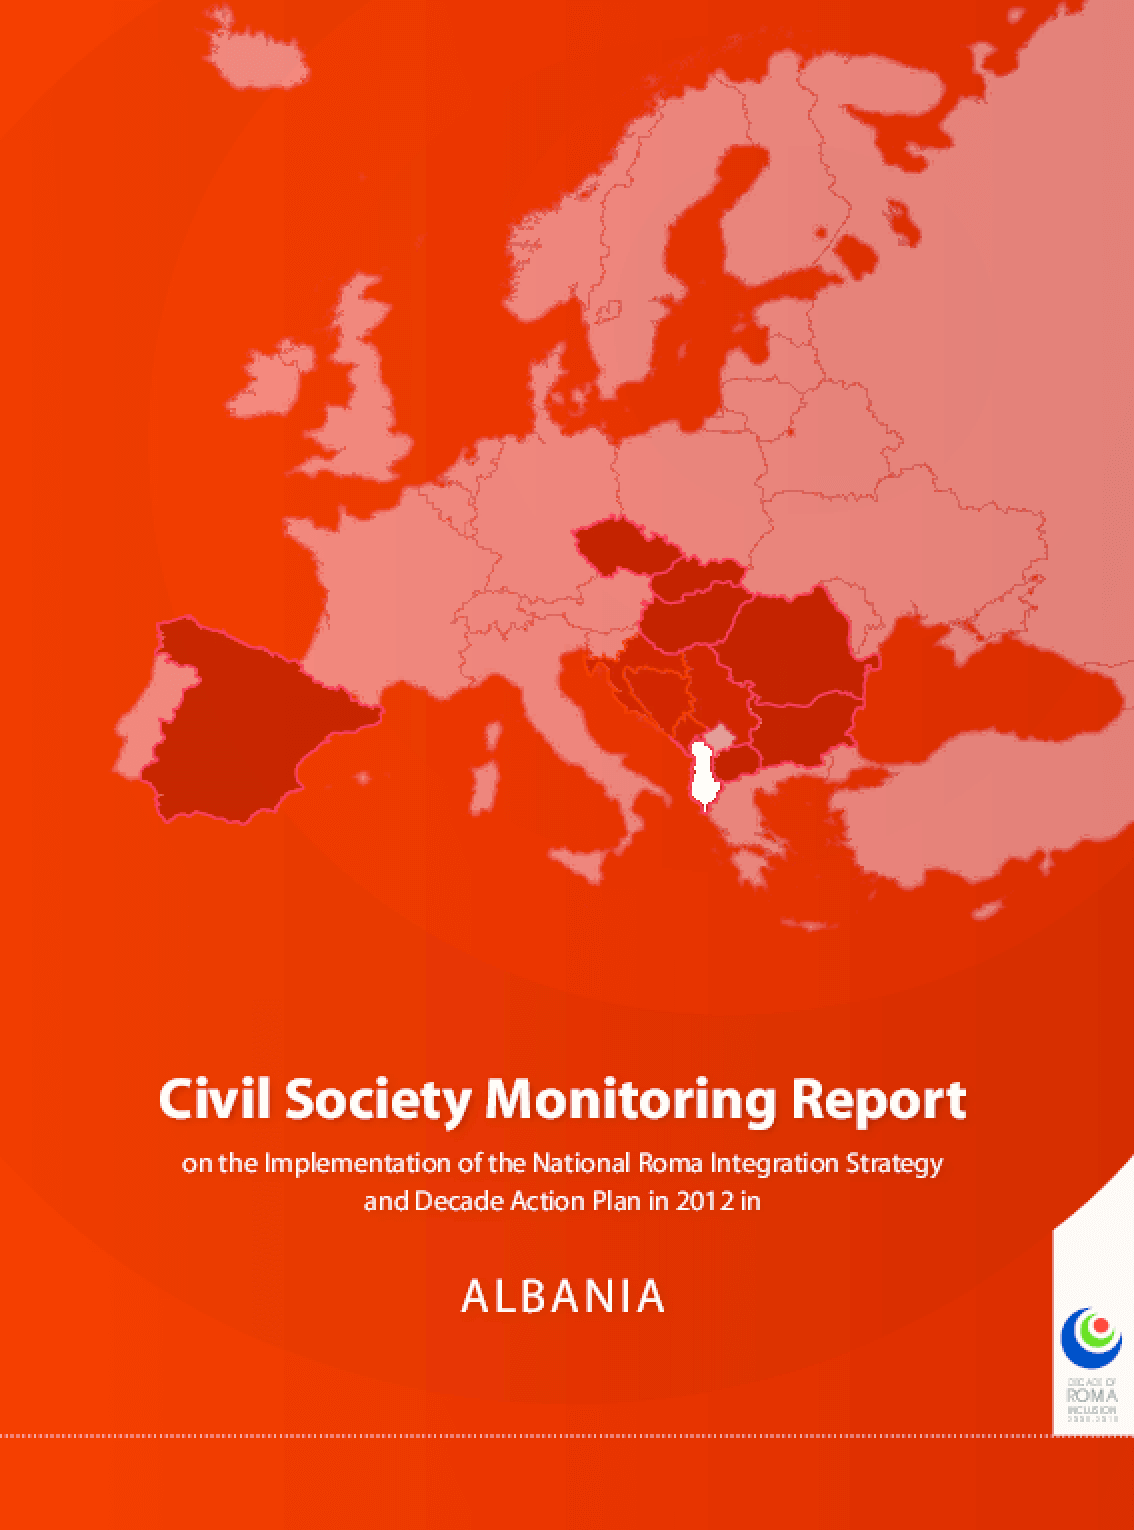 Civil Society Monitoring Report on the Implementation of the National Roma Integration Strategy and Decade Action Plan in 2012 in: Albania